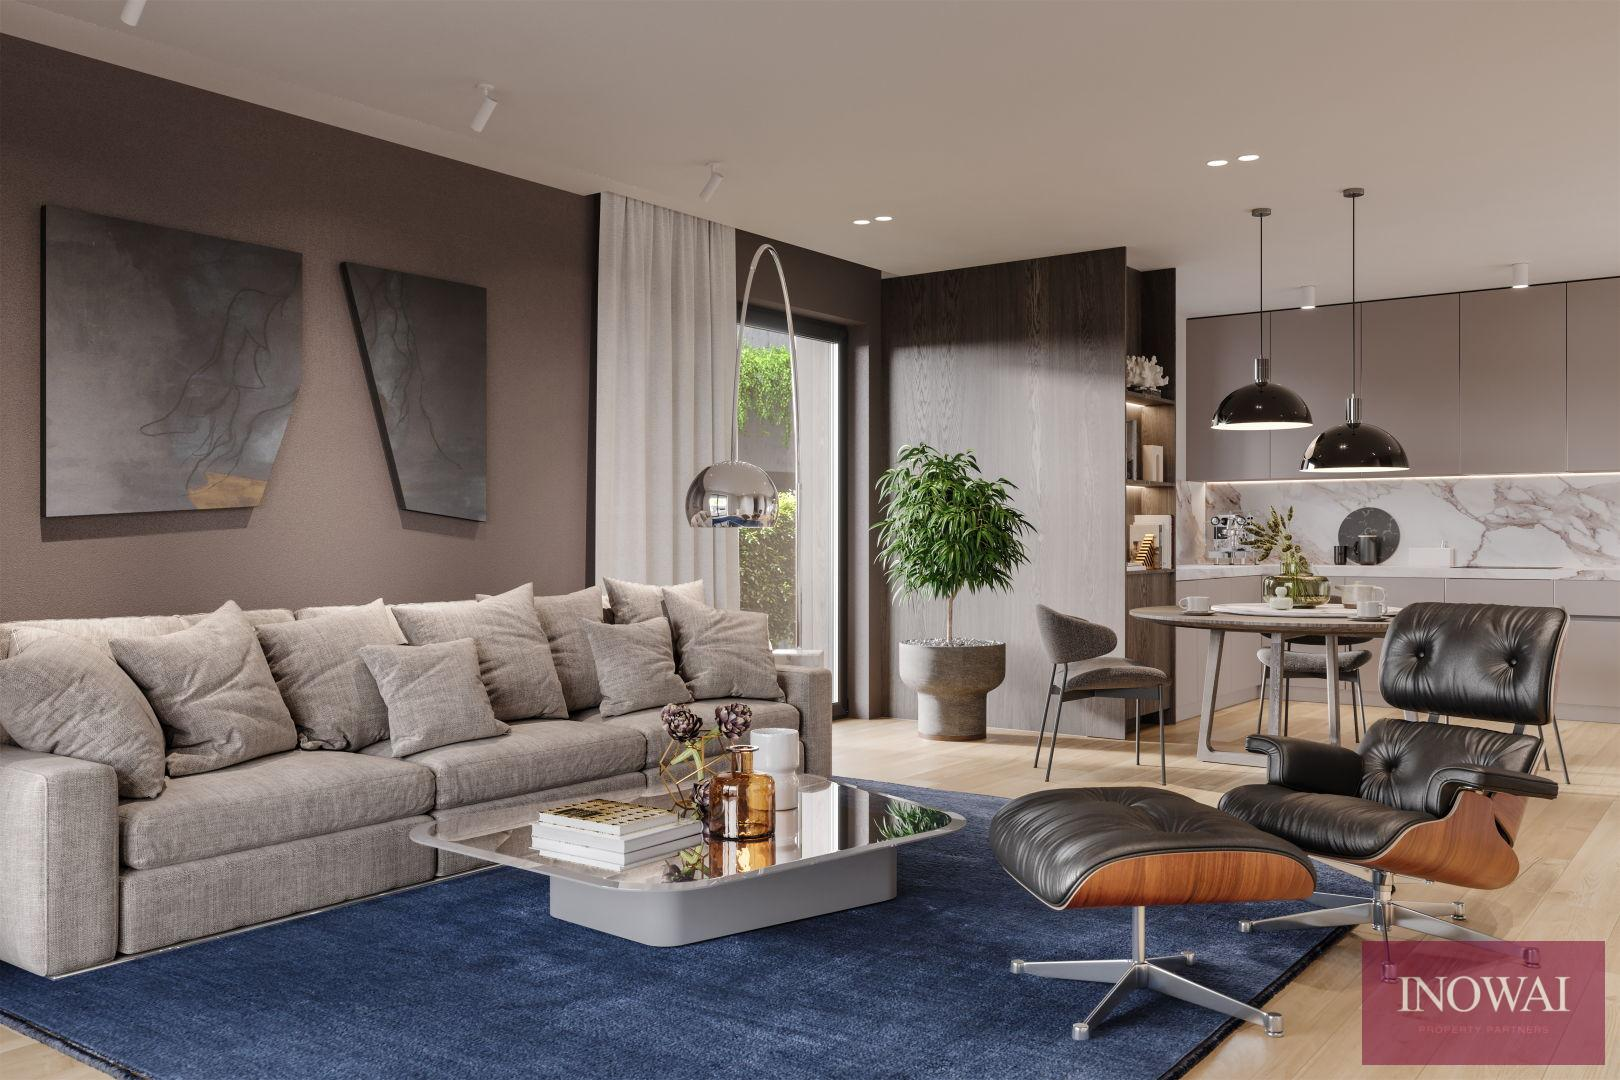 Appartement 3 chambres - projet ROCKWOOD